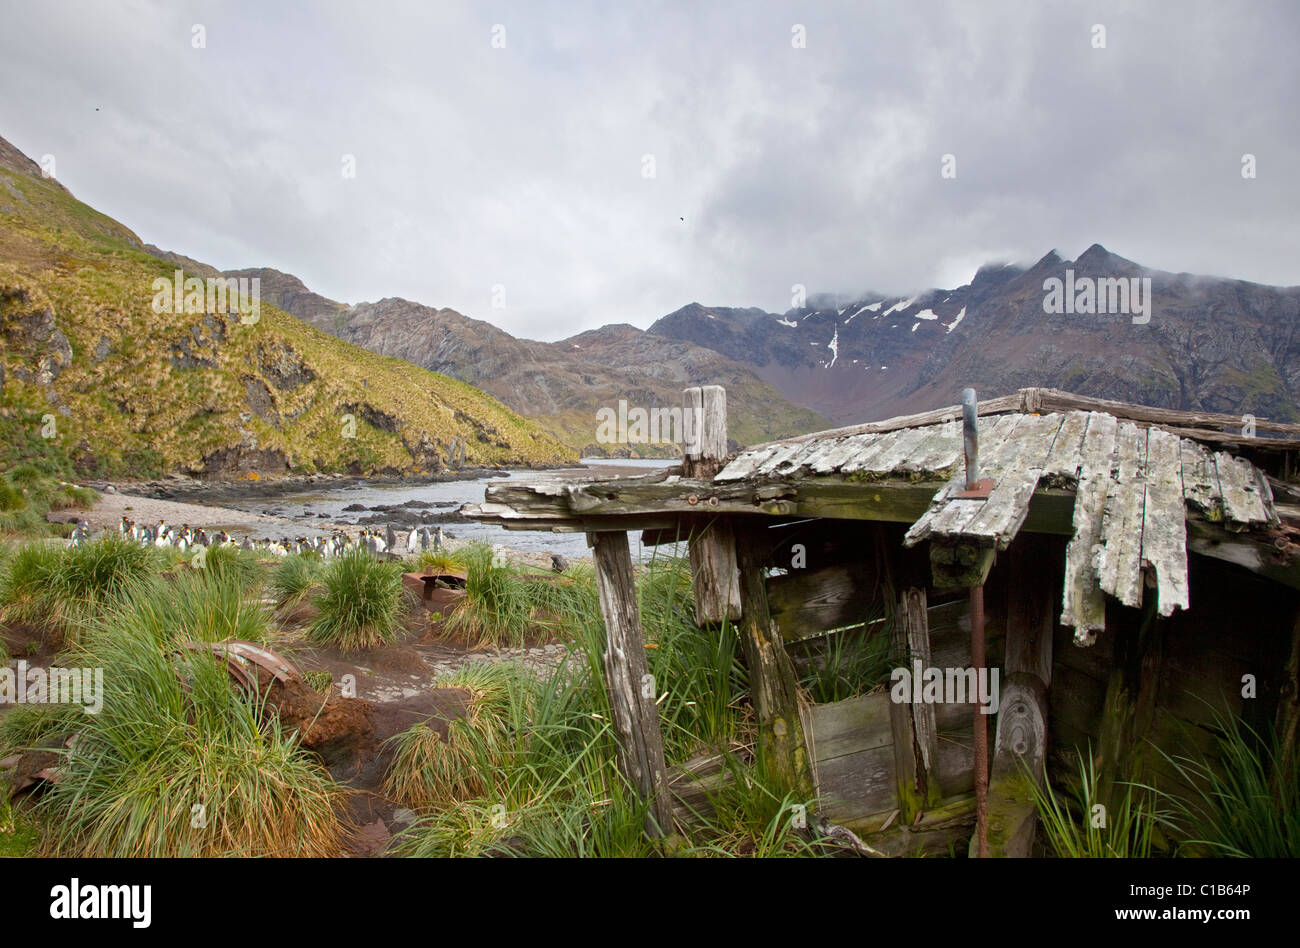 Shipwrecks and remains of the old Whaling Station at Godthul, South Georgia - Stock Image